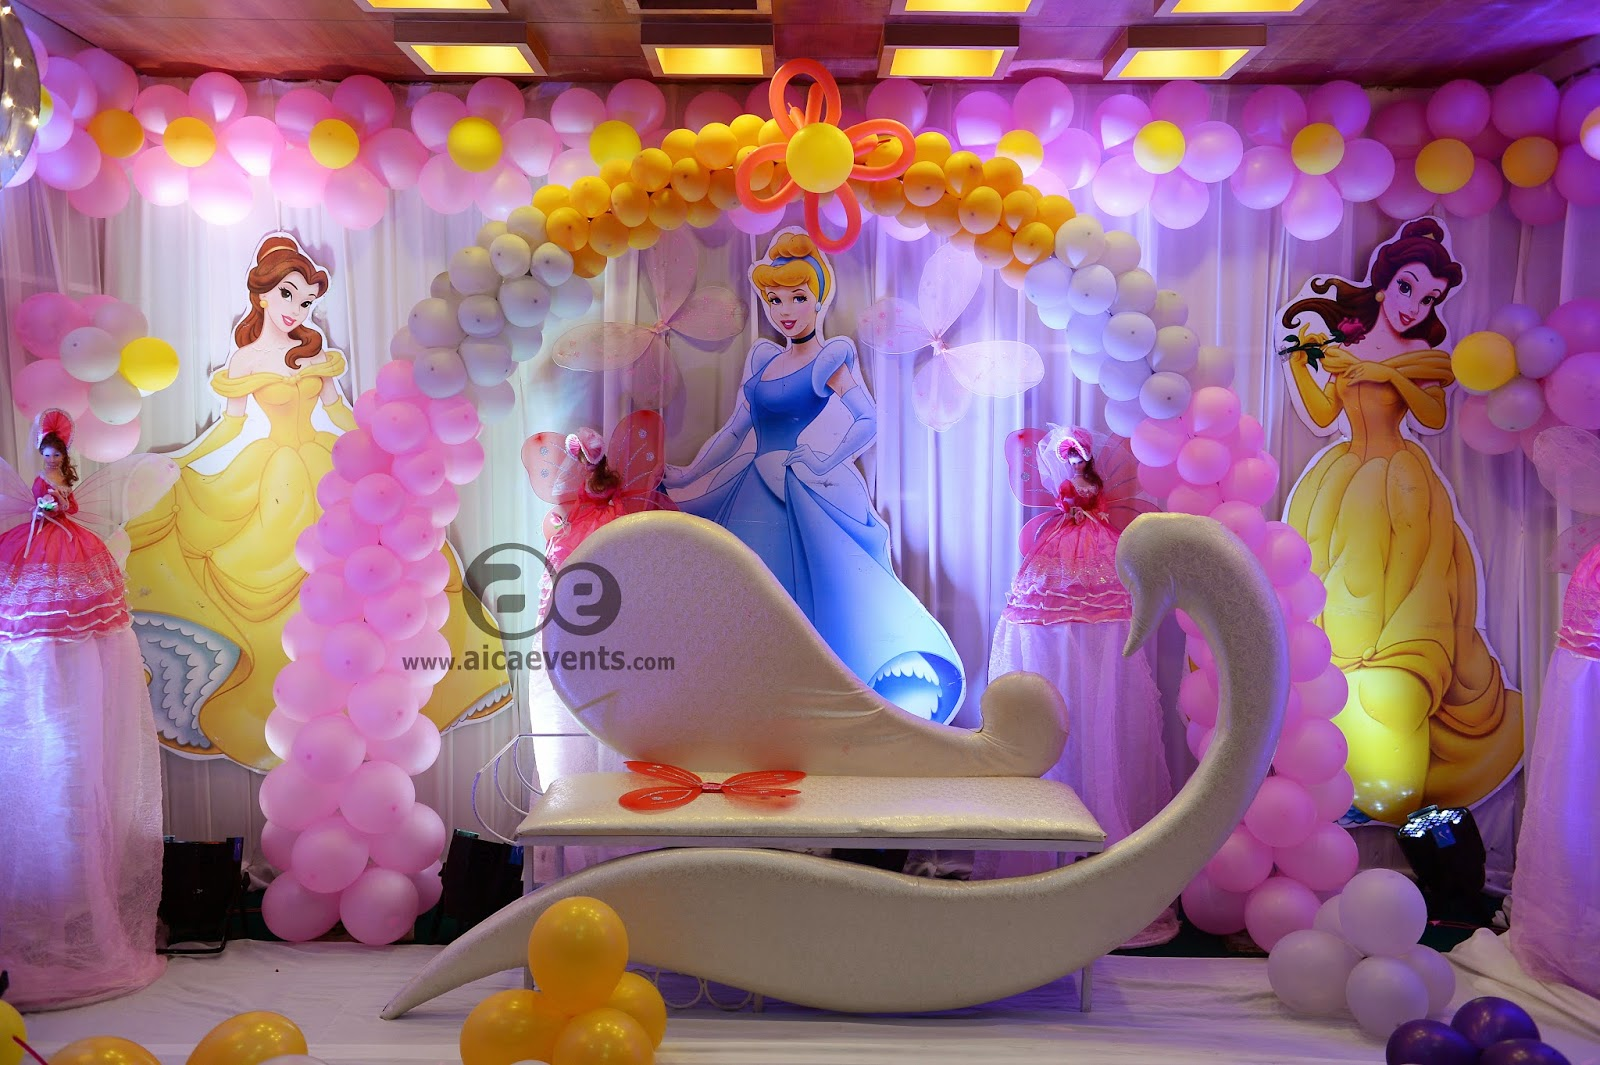 Aicaevents barbie theme decorations by aica events for 1st birthday hall decoration ideas